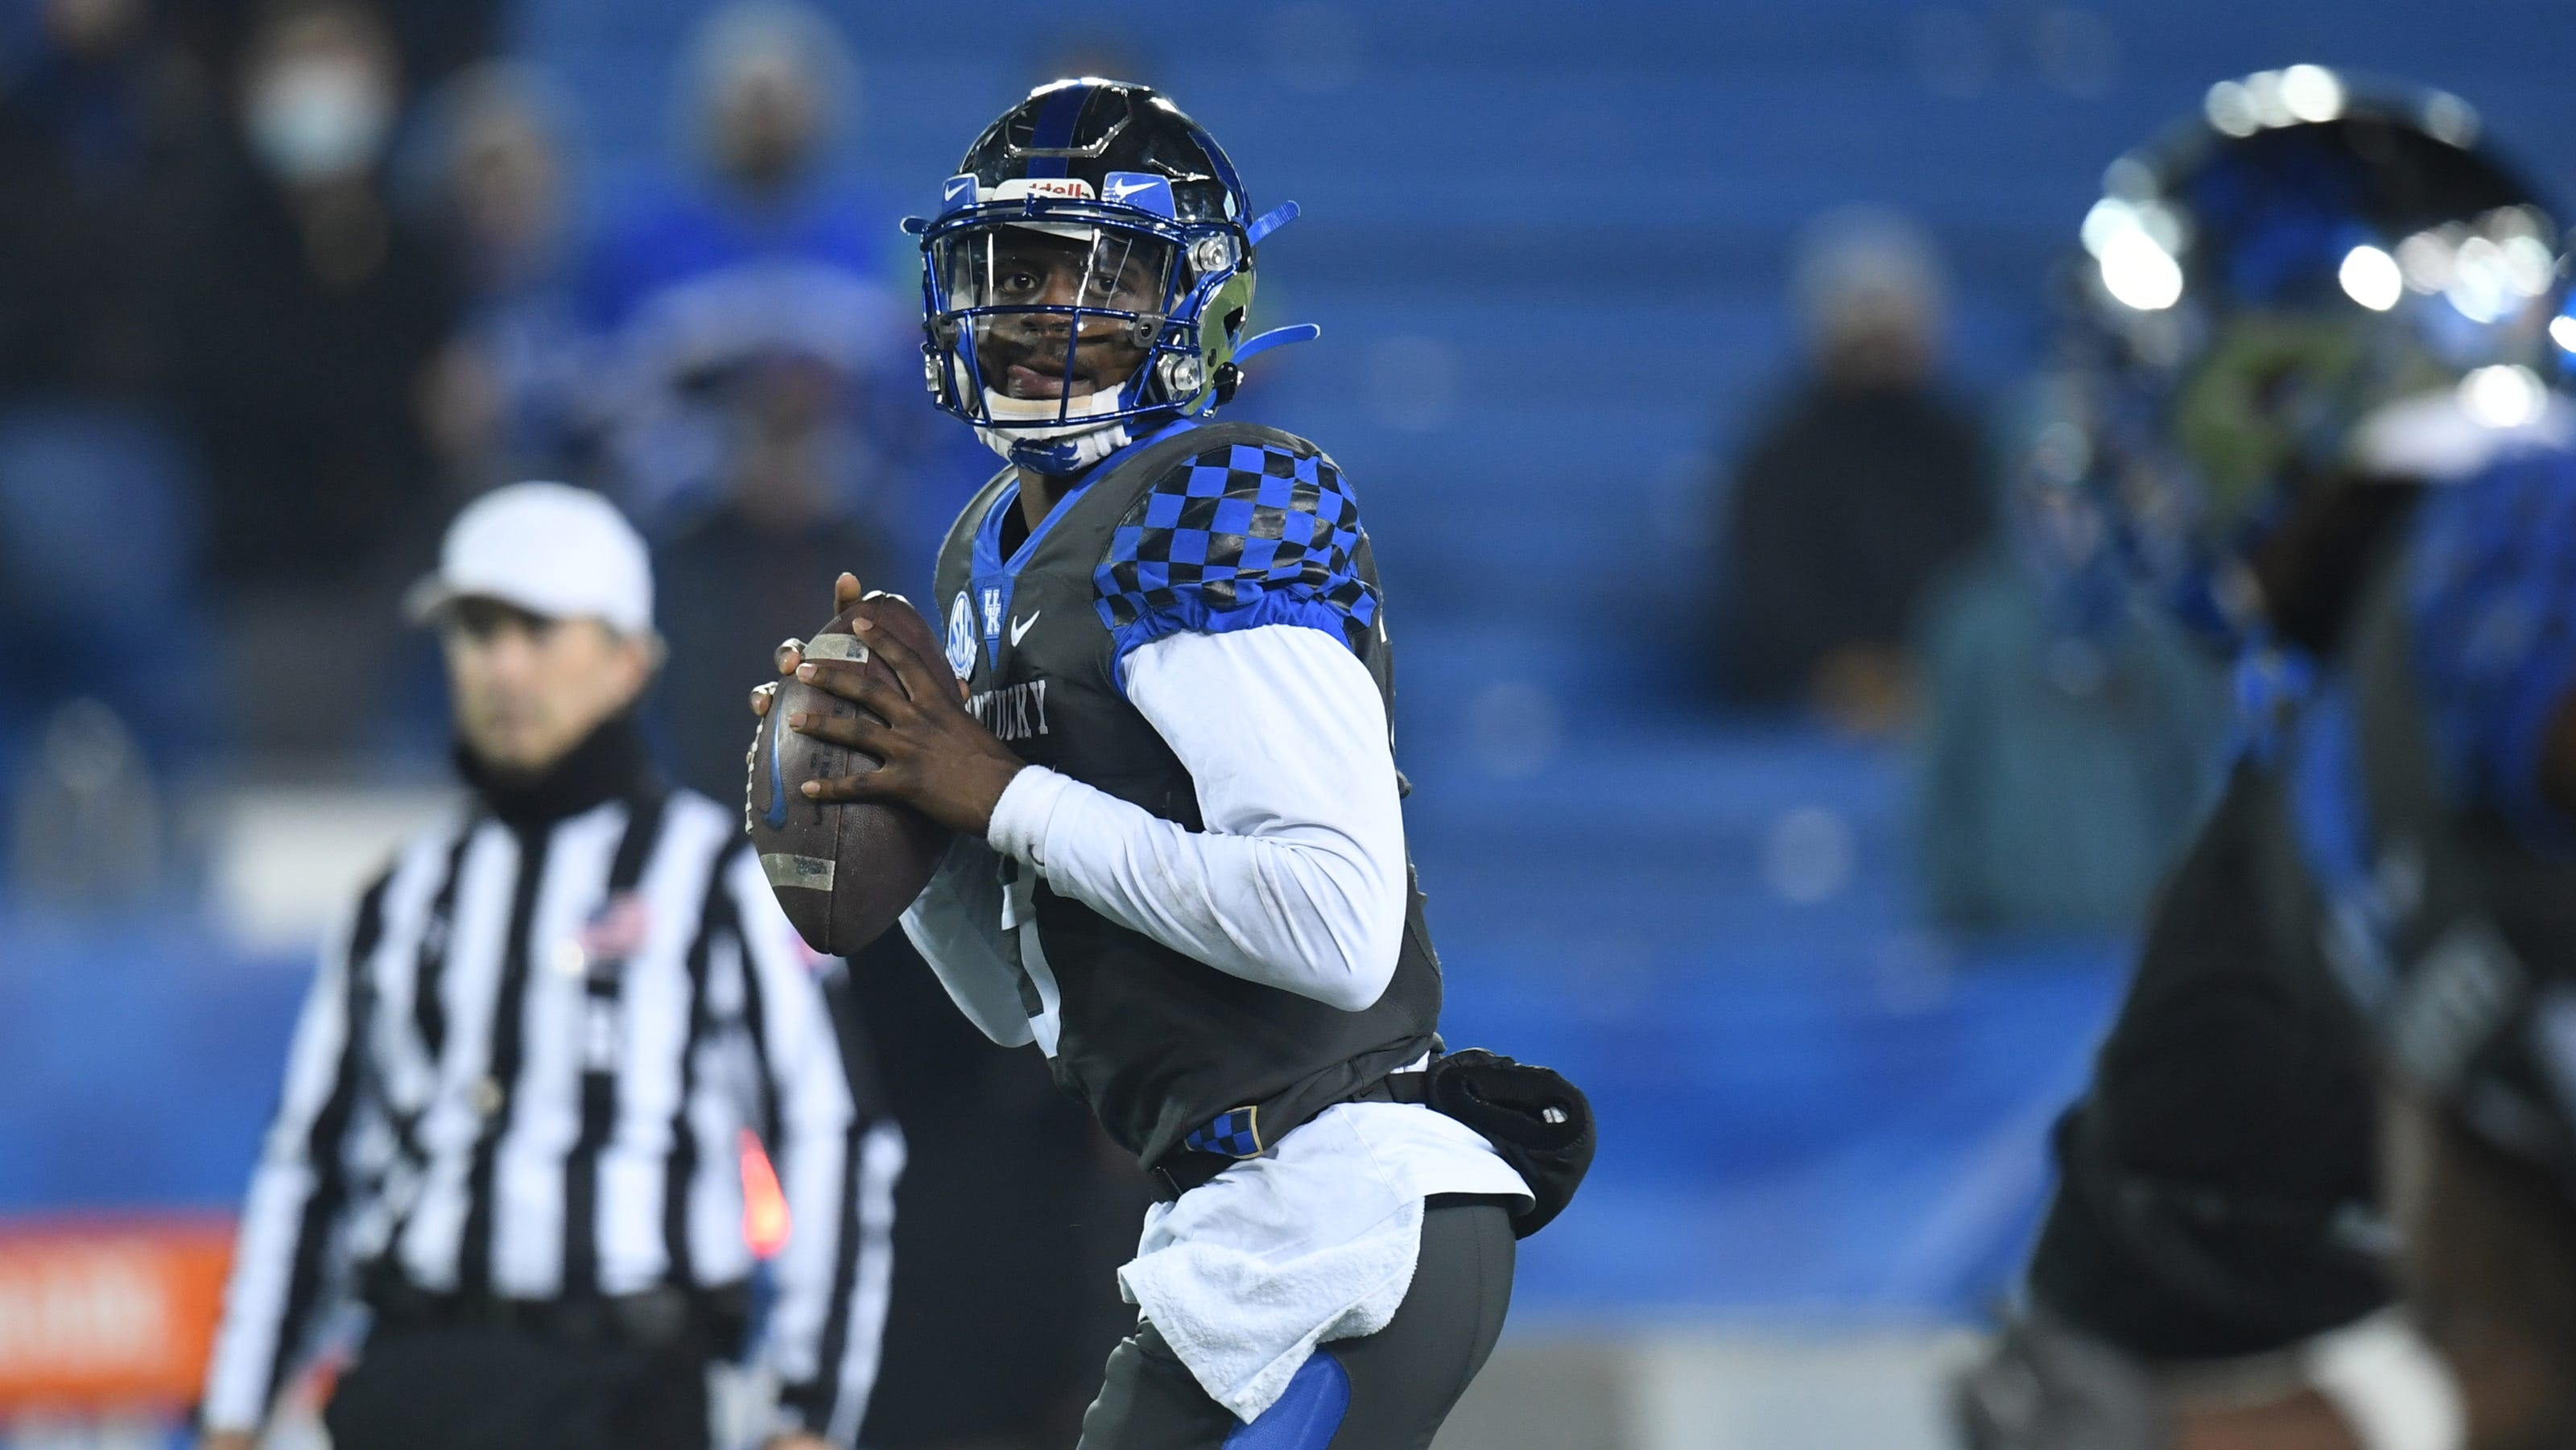 How to watch or stream the Gator Bowl: Kickoff time, TV channel for Kentucky vs. NC State